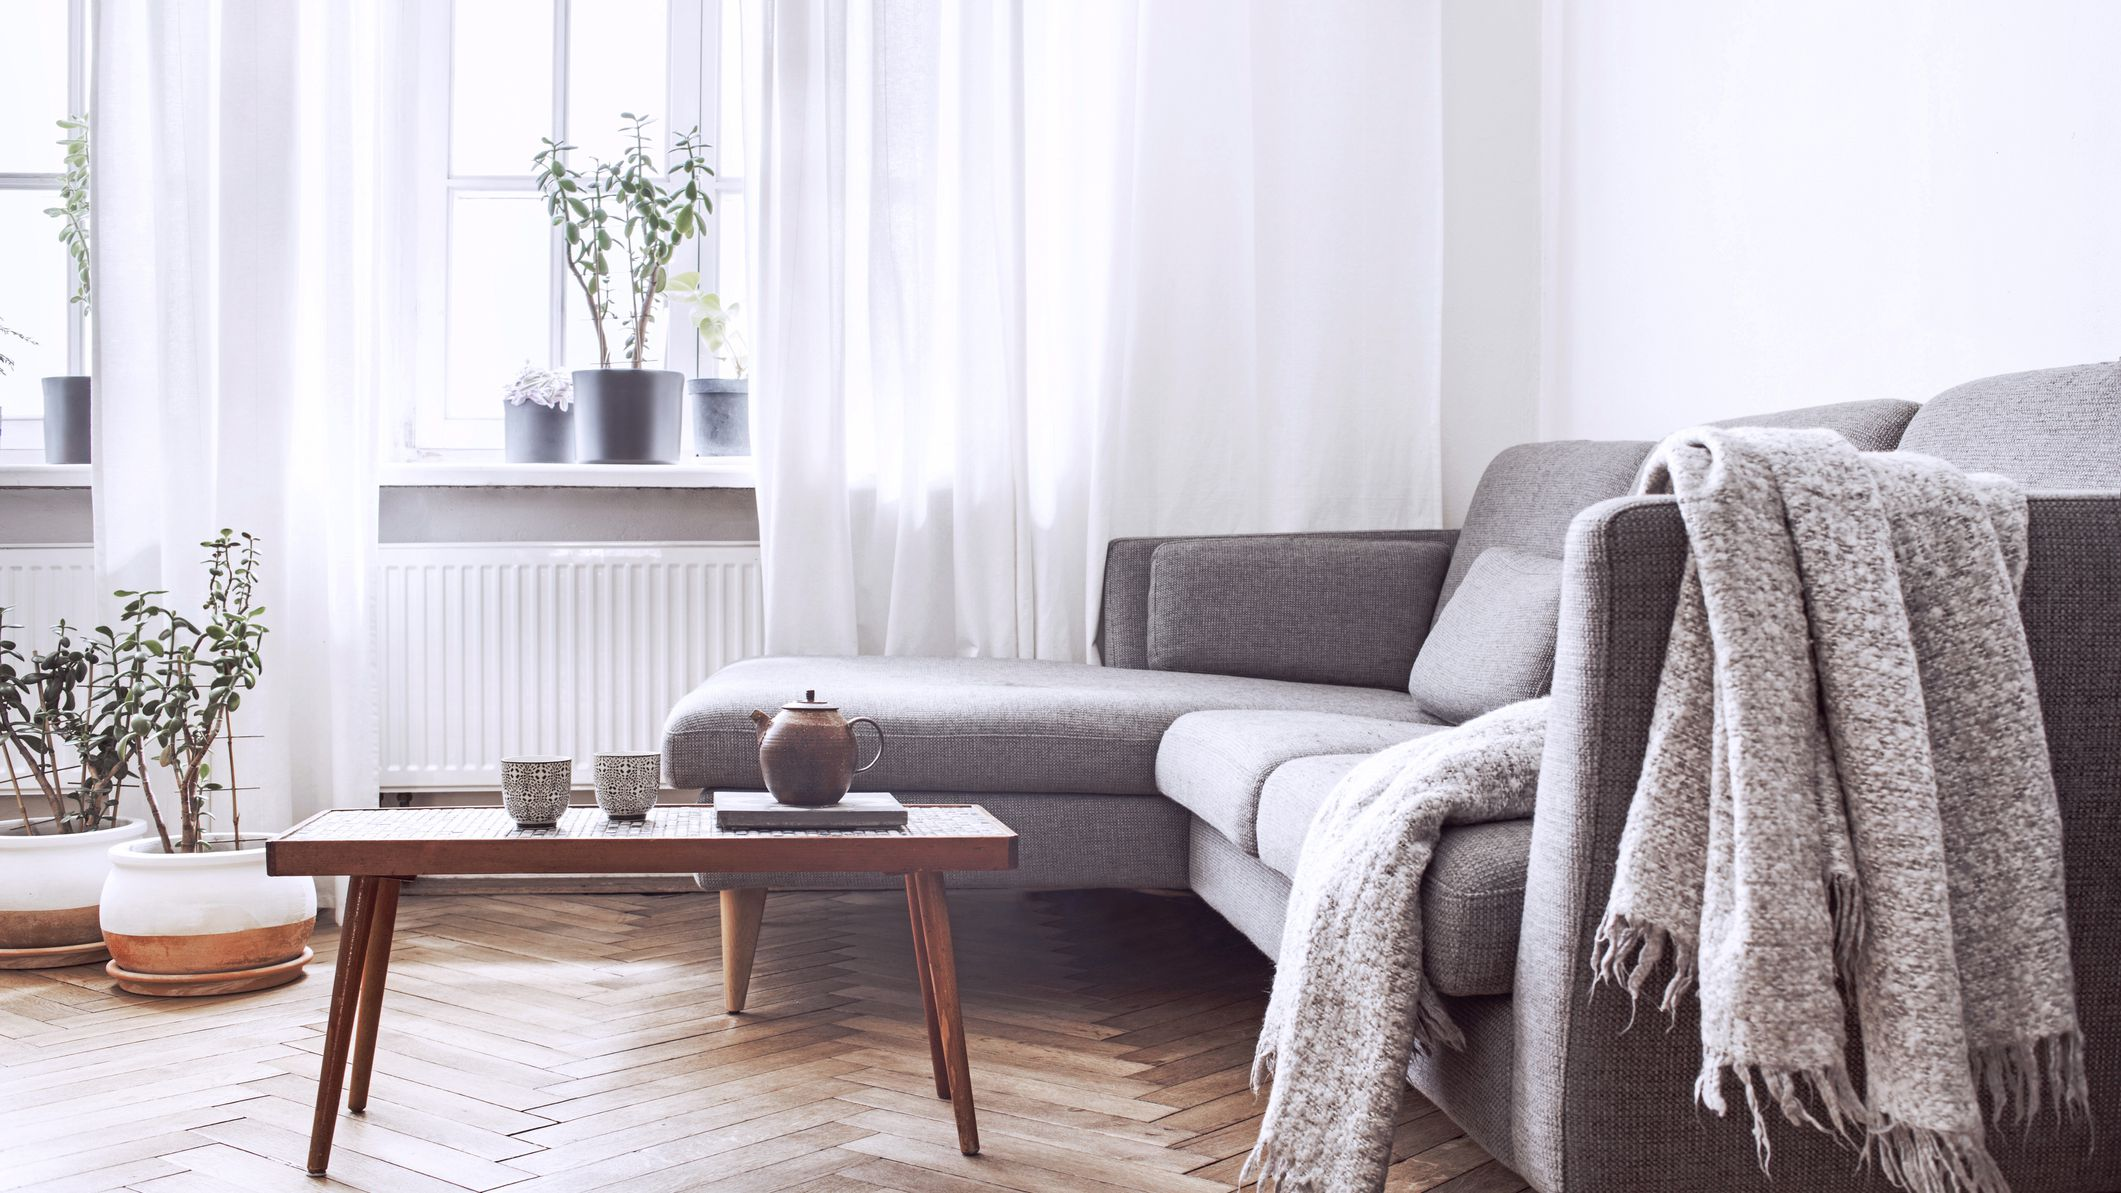 Decorating An Apartment On A Budget